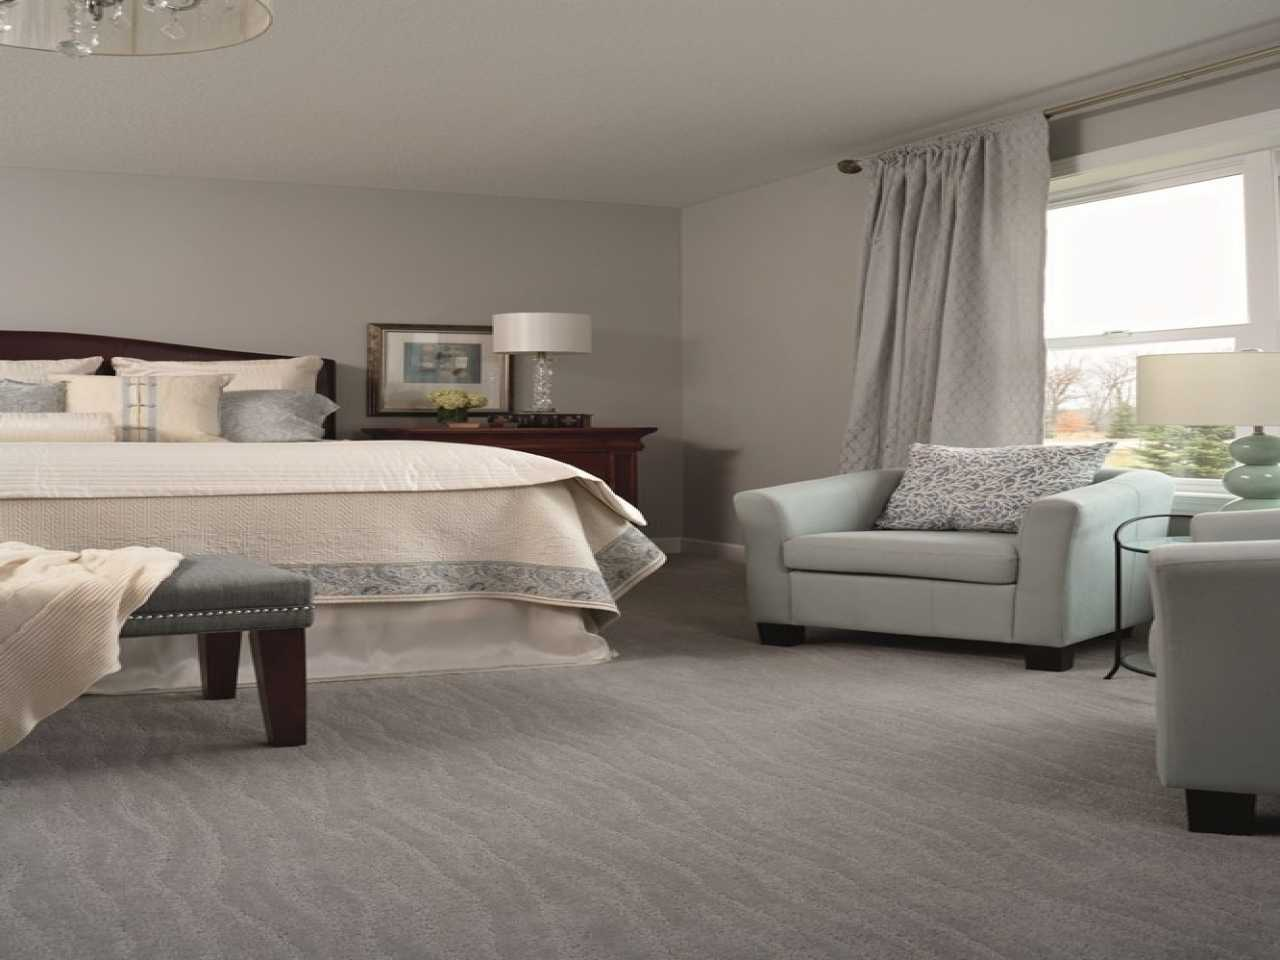 carpet choices for bedrooms most popular carpet for collection also fascinating bedrooms ideas choices  style colors ZPVVDEE